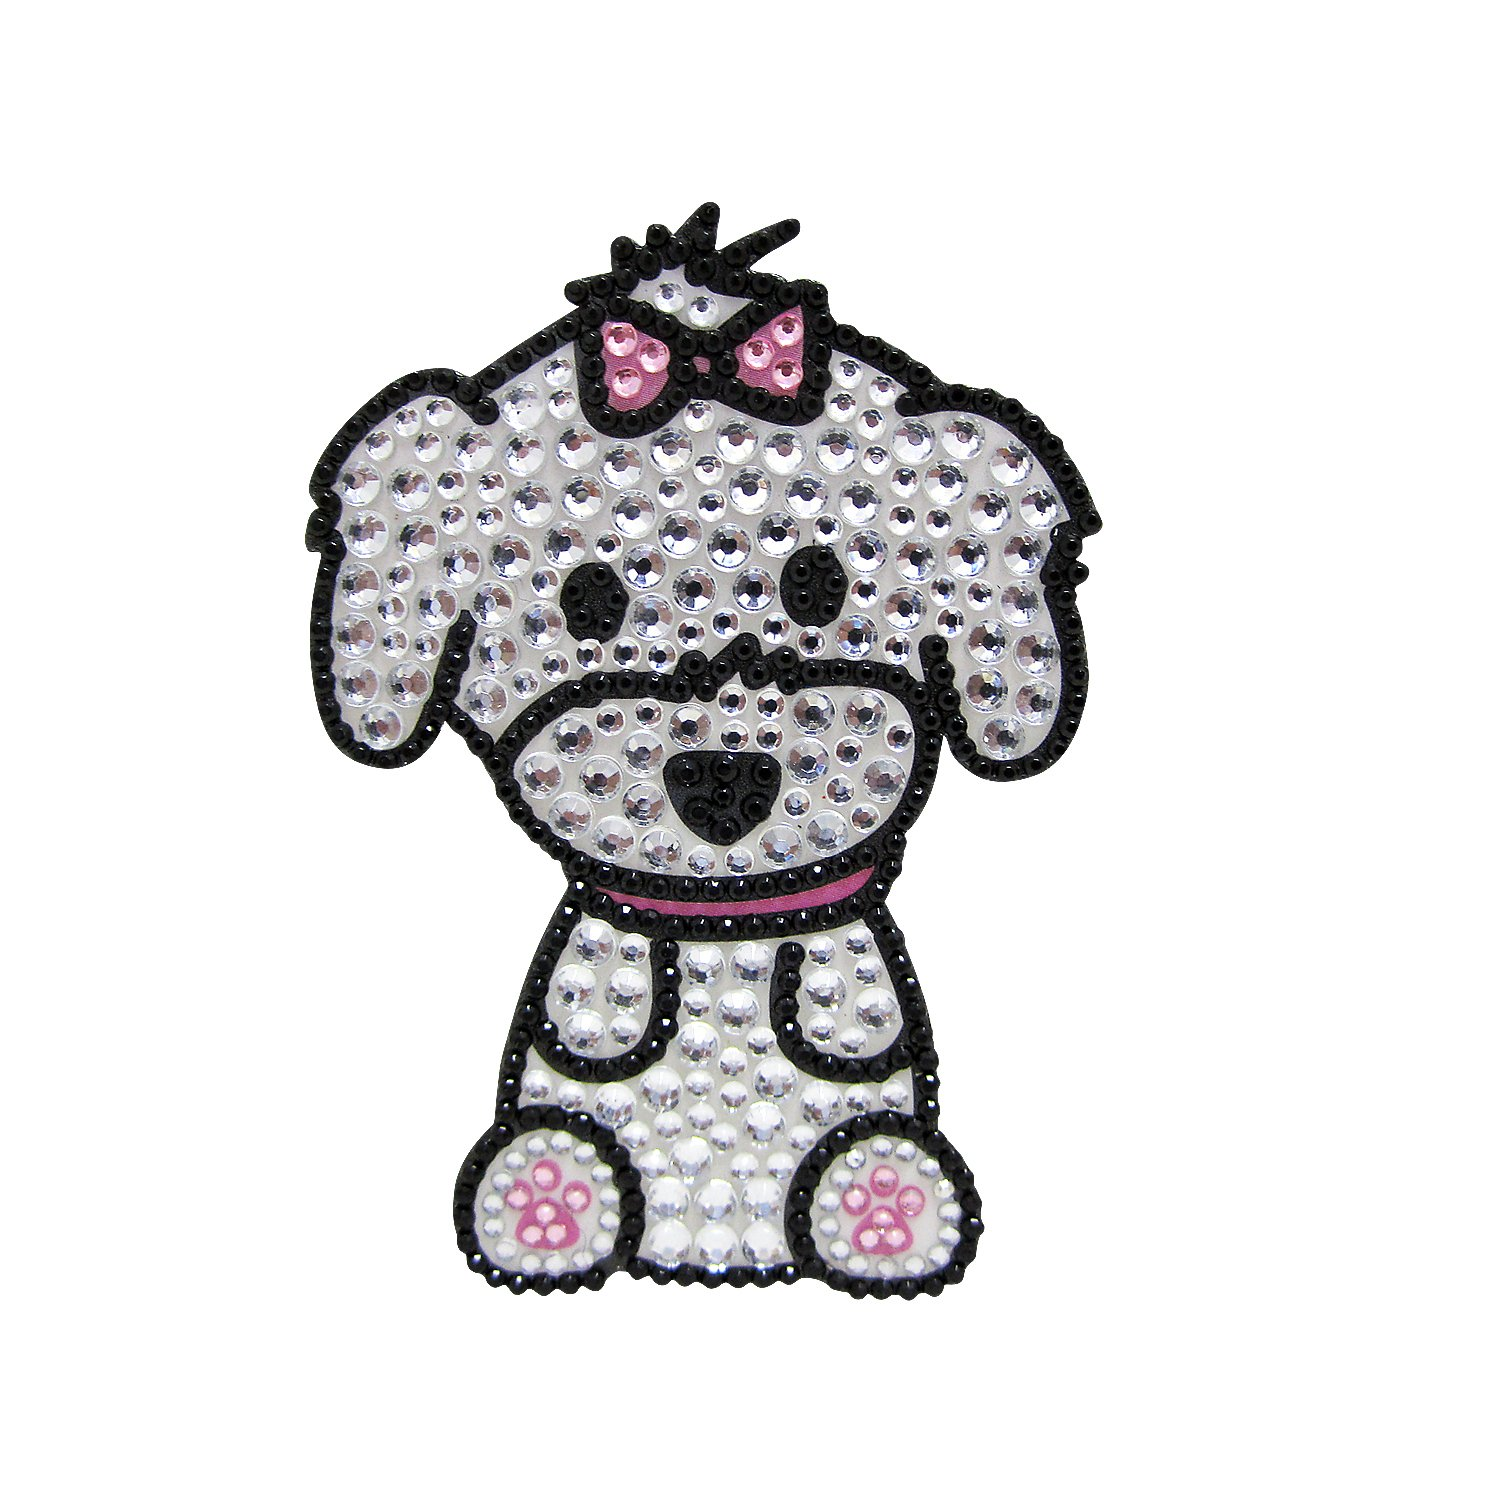 FouFou Dog Rhinestone Sticker, Mediumaltese Girl